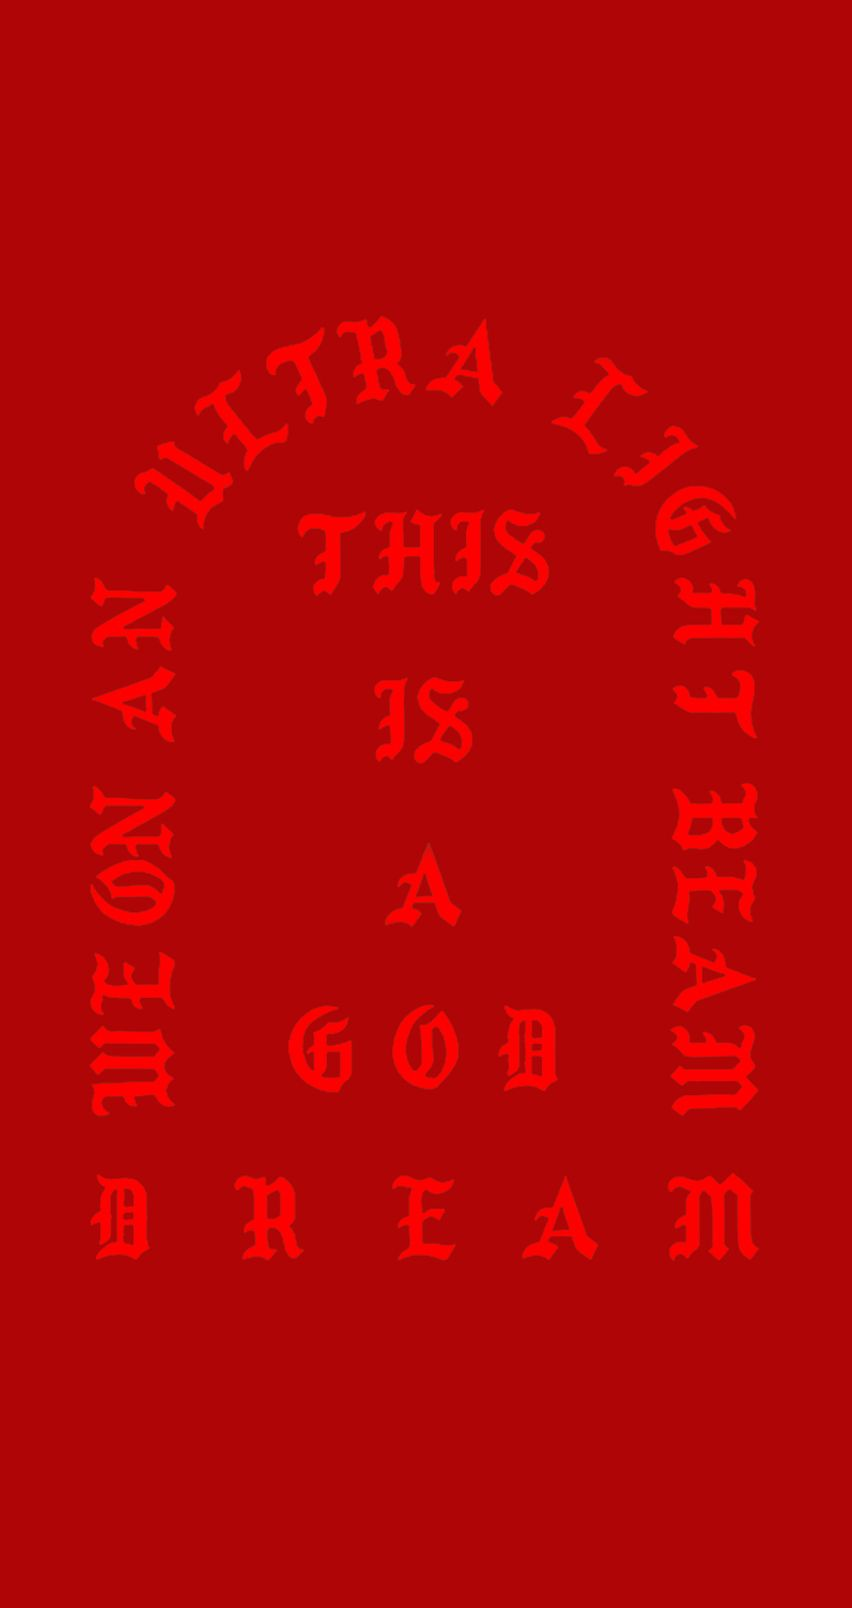 Tlop New Merch Wallpapers Updated Kanye West Forum Kanye West Wallpaper Hype Wallpaper Kanye